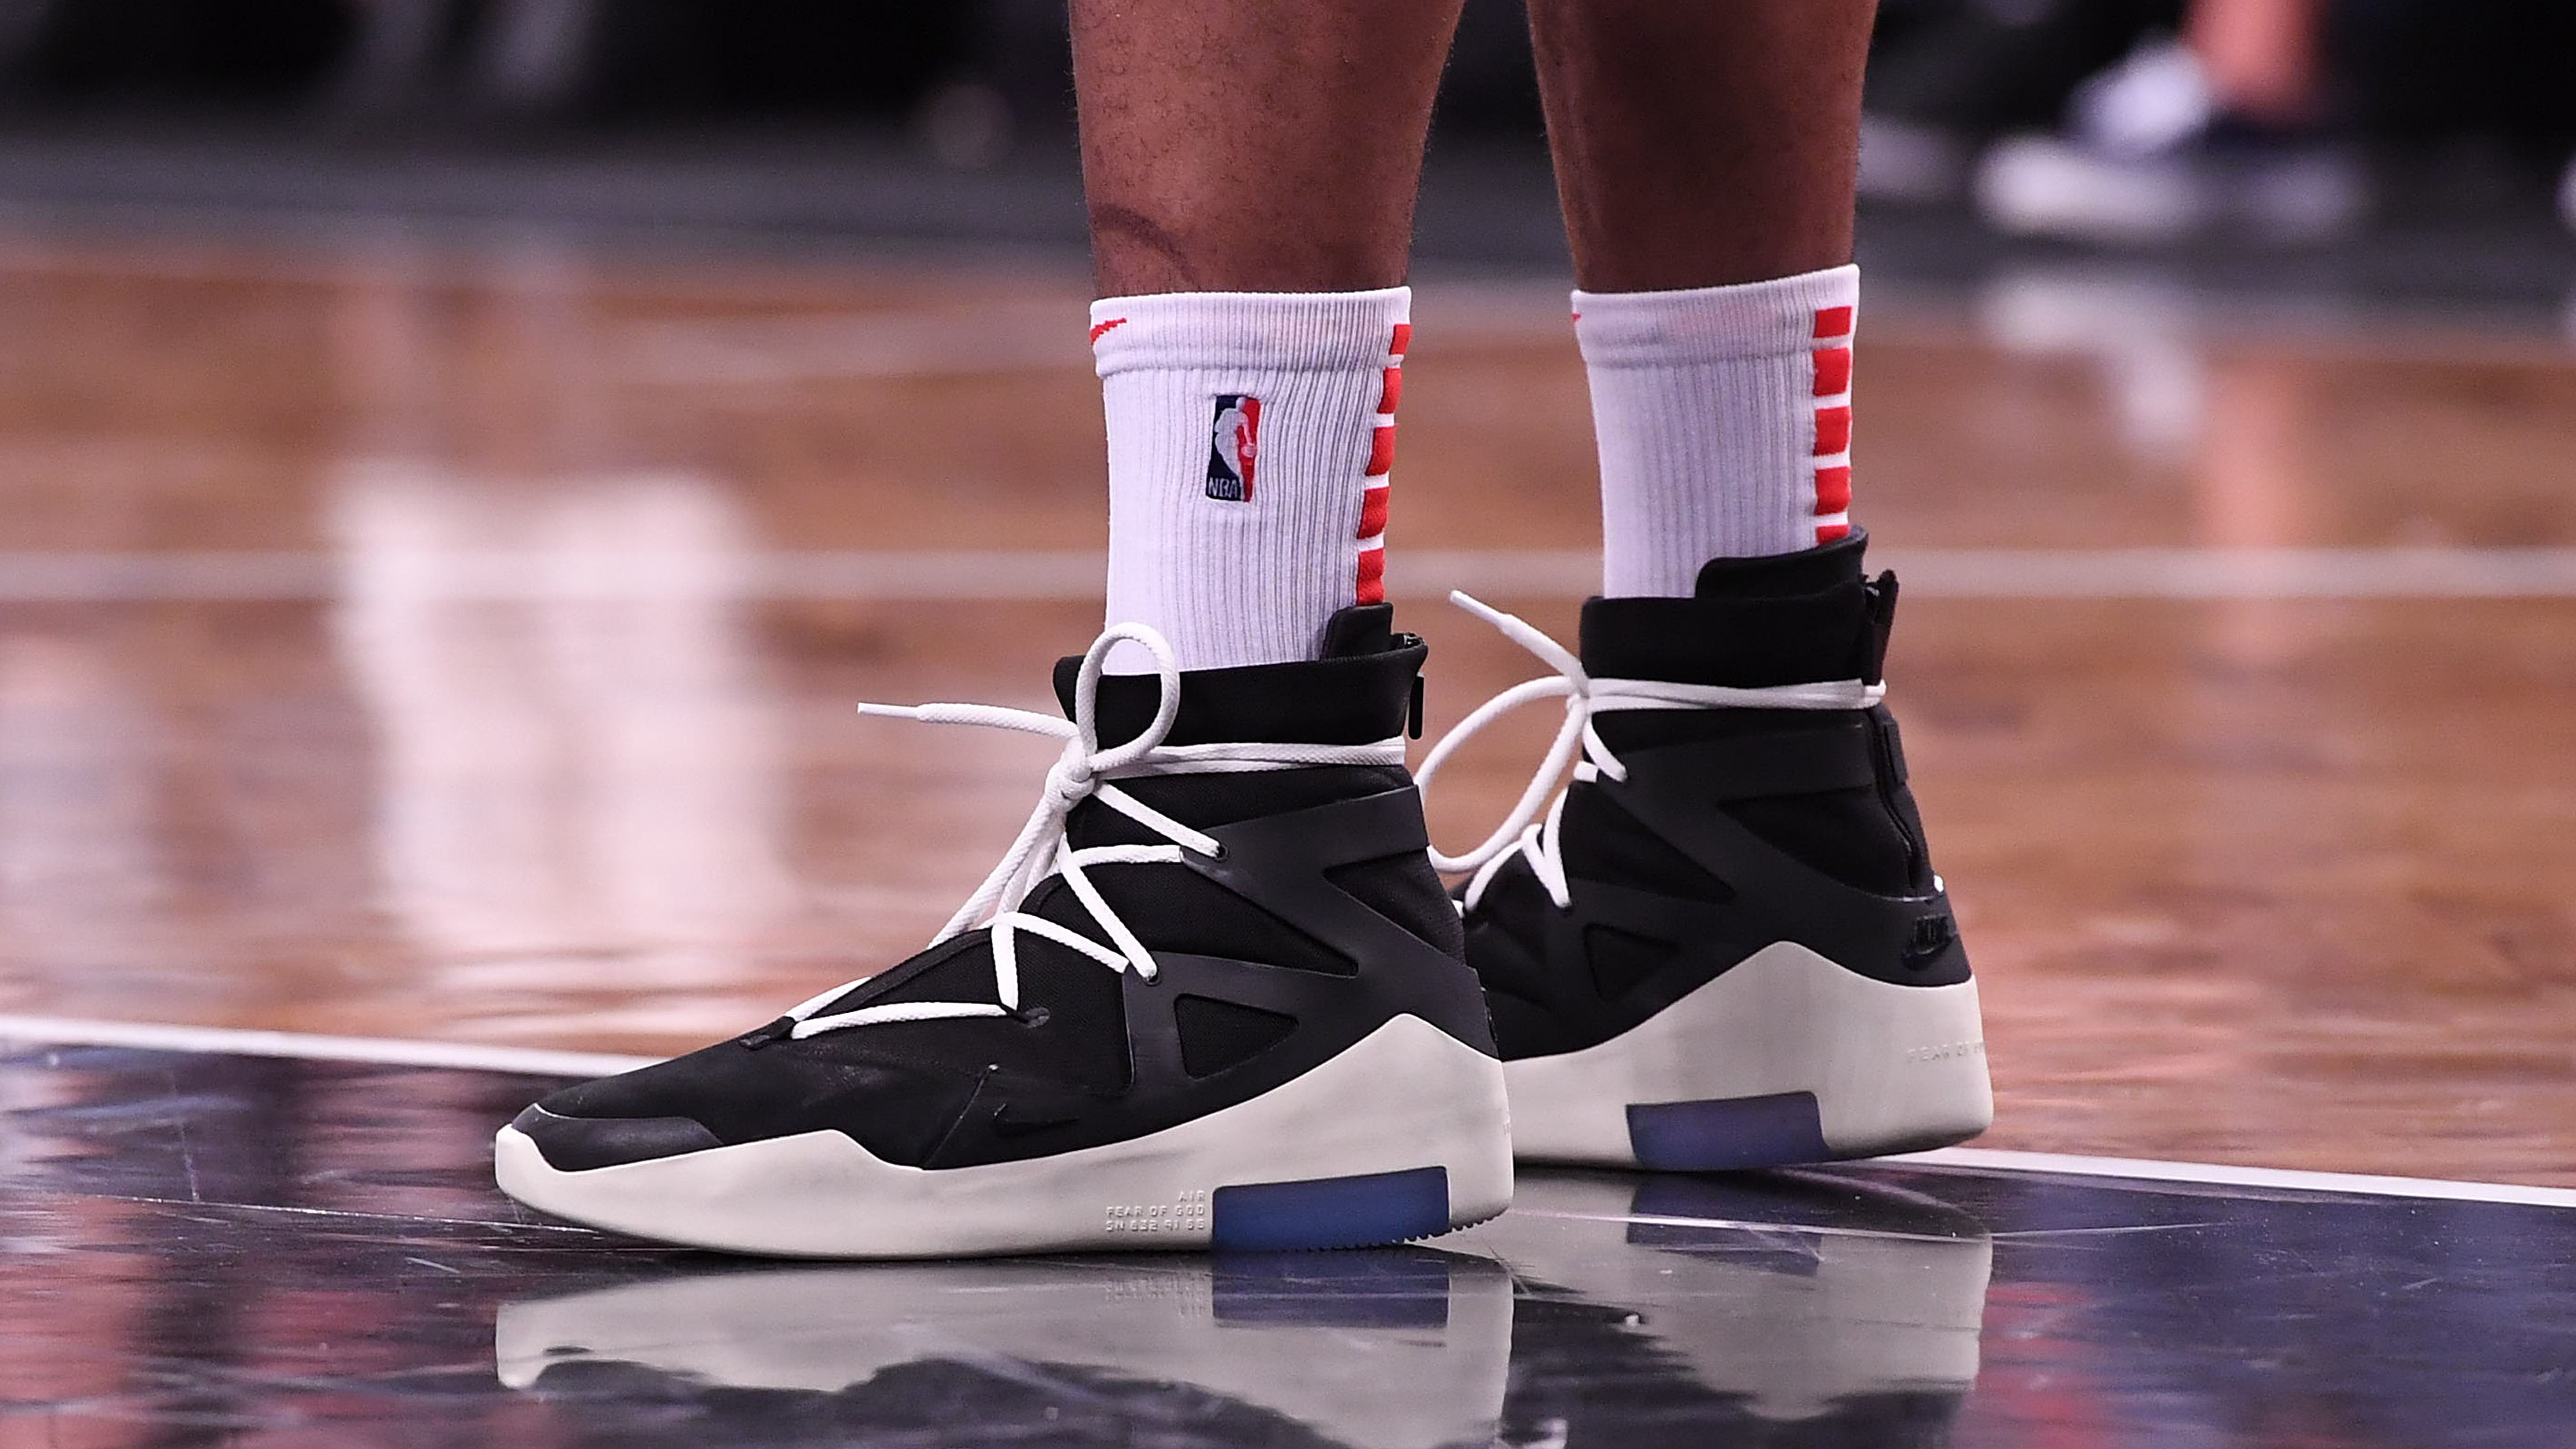 P.J. Tucker Hints at New Sneaker Project With Jerry Lorenzo